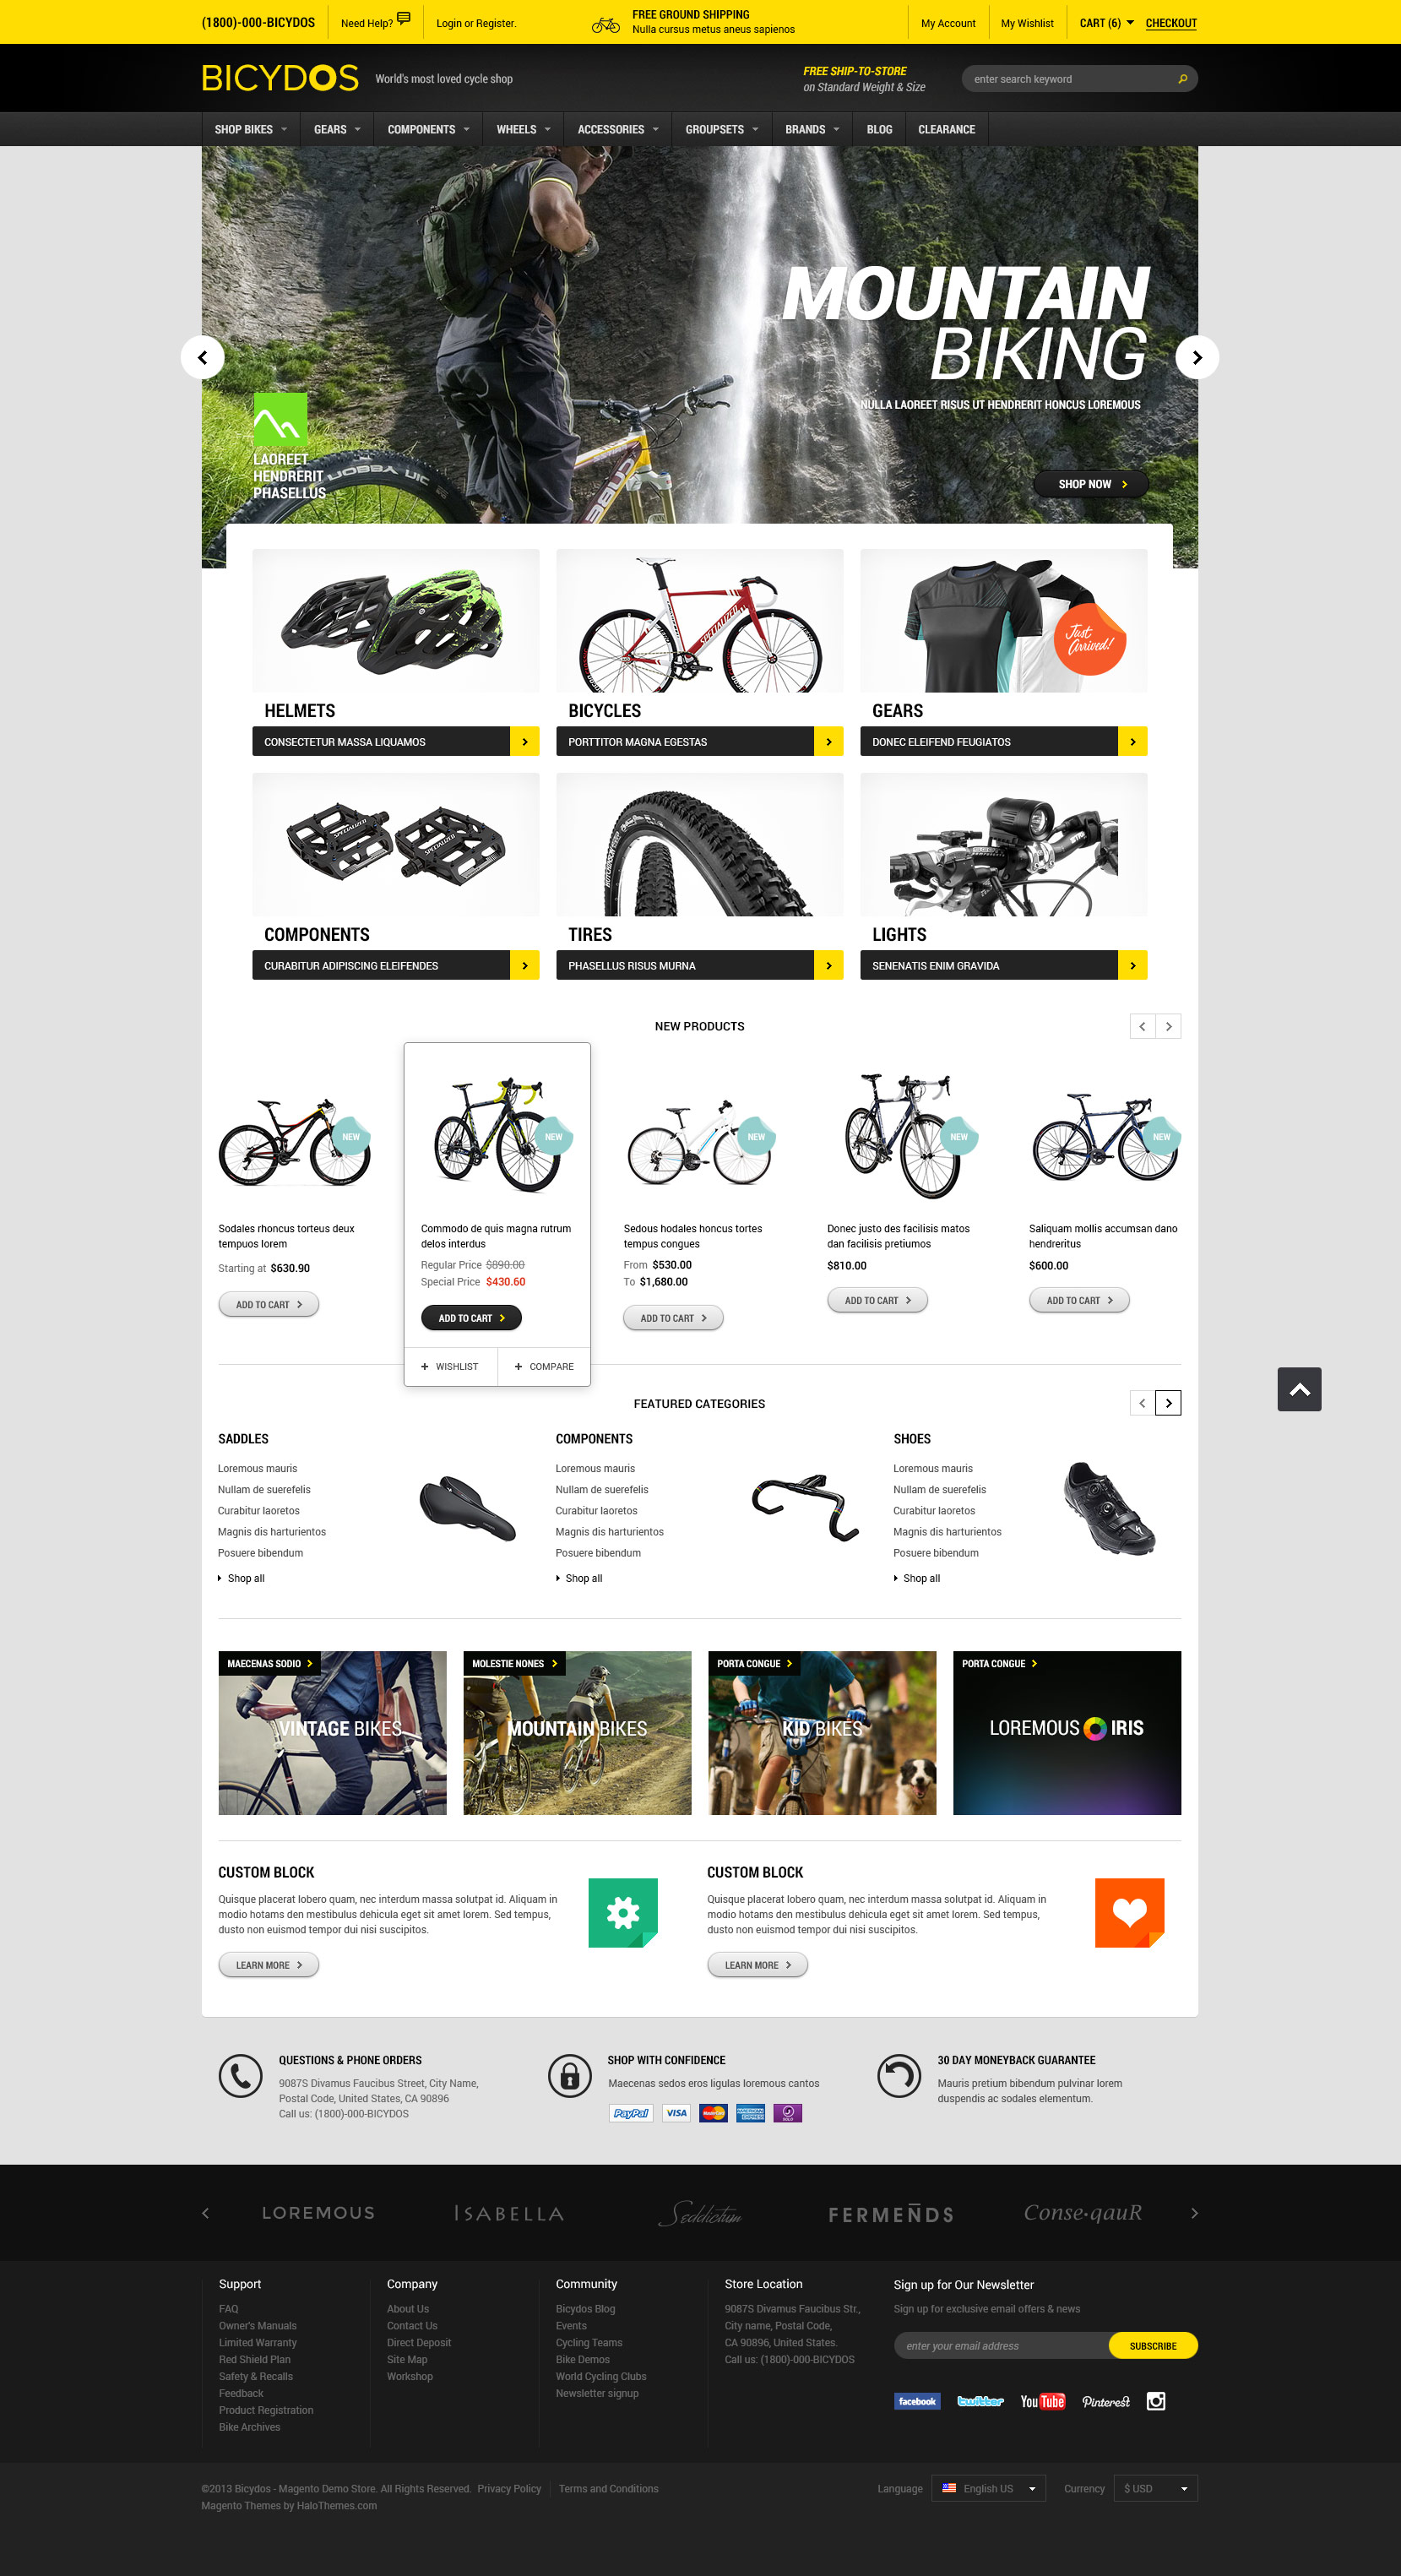 Halo Bicydos - Bike Store Responsive Magento Template (1.9.x ready on contact design, design design, portal design, forms design, modern intranet design, archives design, faq design, header design, my own dress design, e-mail design, education design, phone design, career design, photography design, corporate design, journal table of contents design, blog design, sharepoint site design, company design, history design,